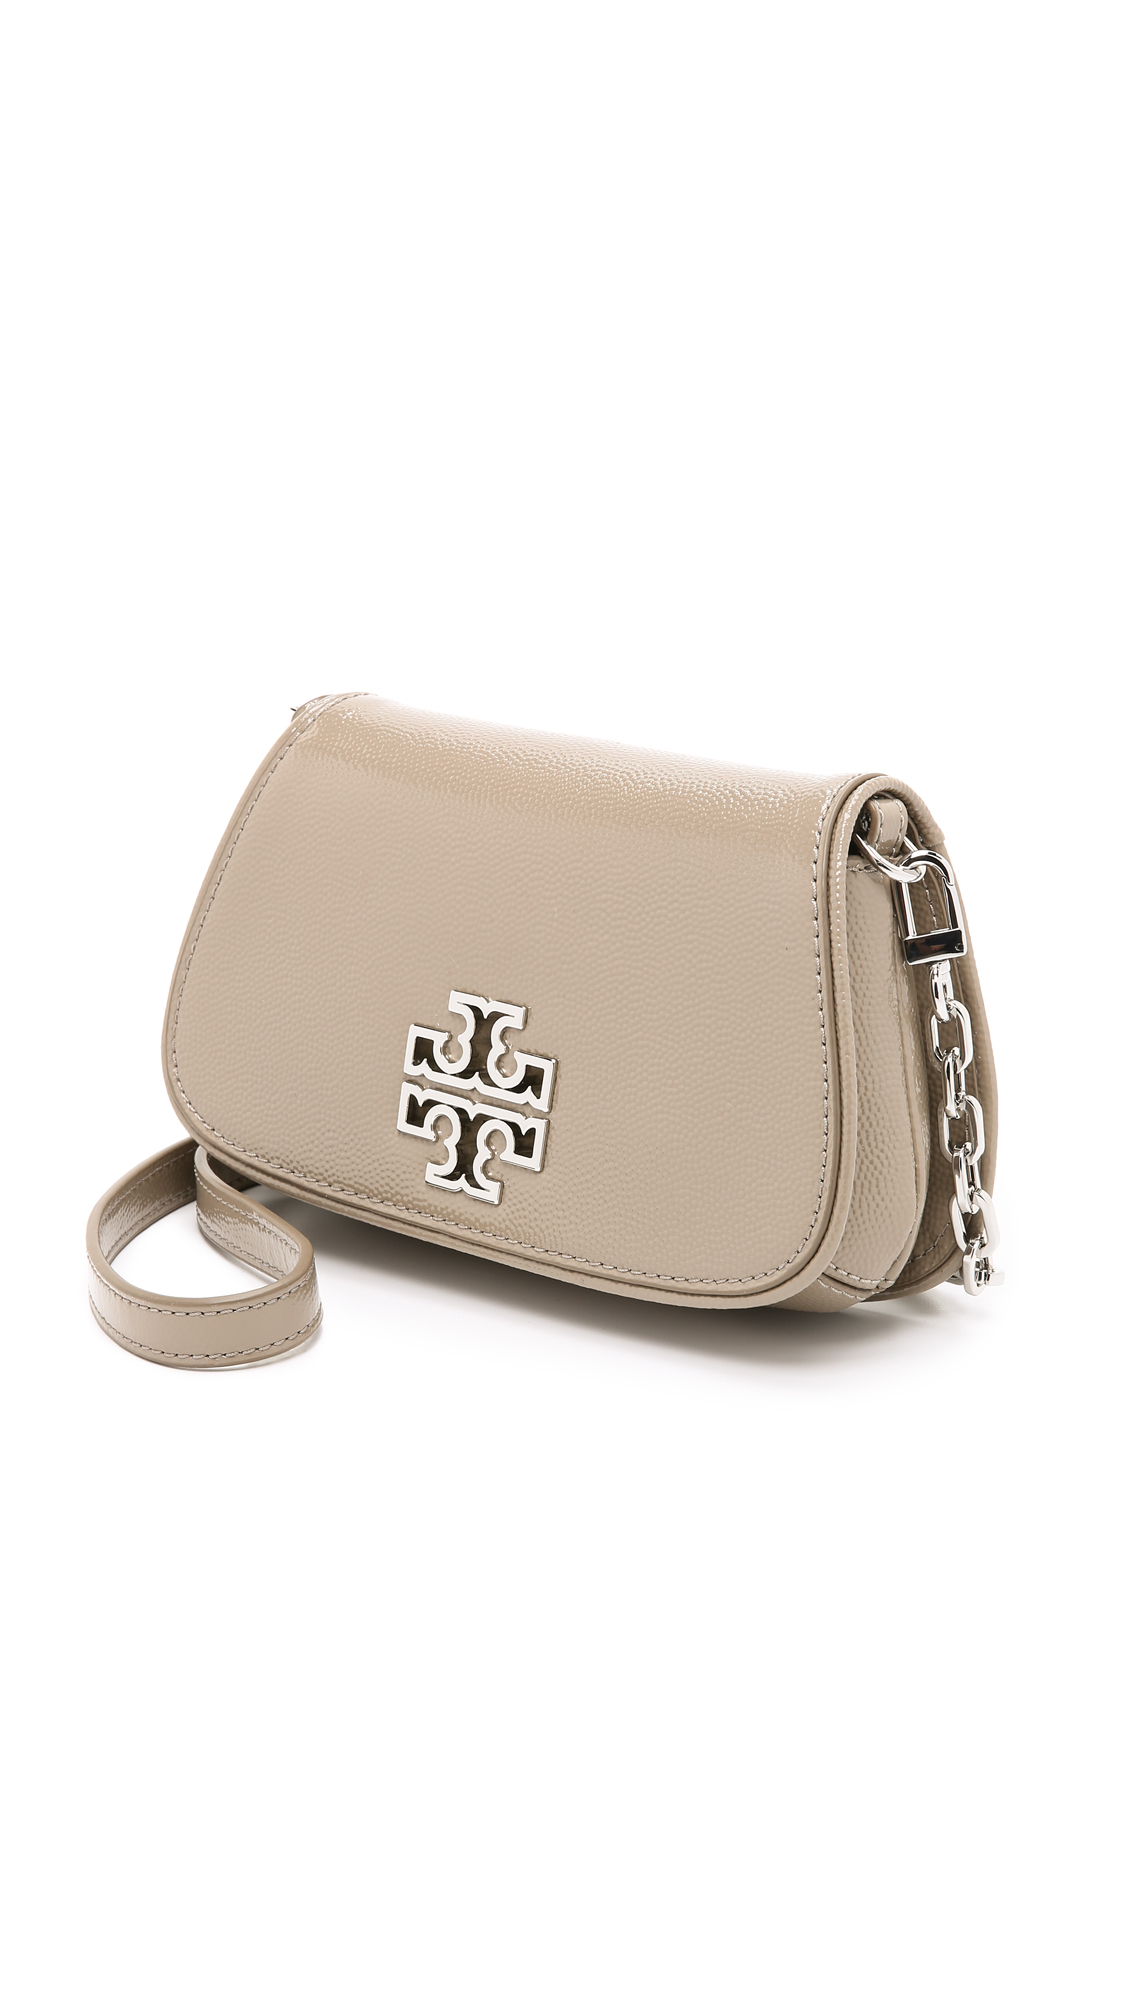 324aba6dbd48 Lyst - Tory Burch Britten Mini Cross Body Bag - French Gray in Gray